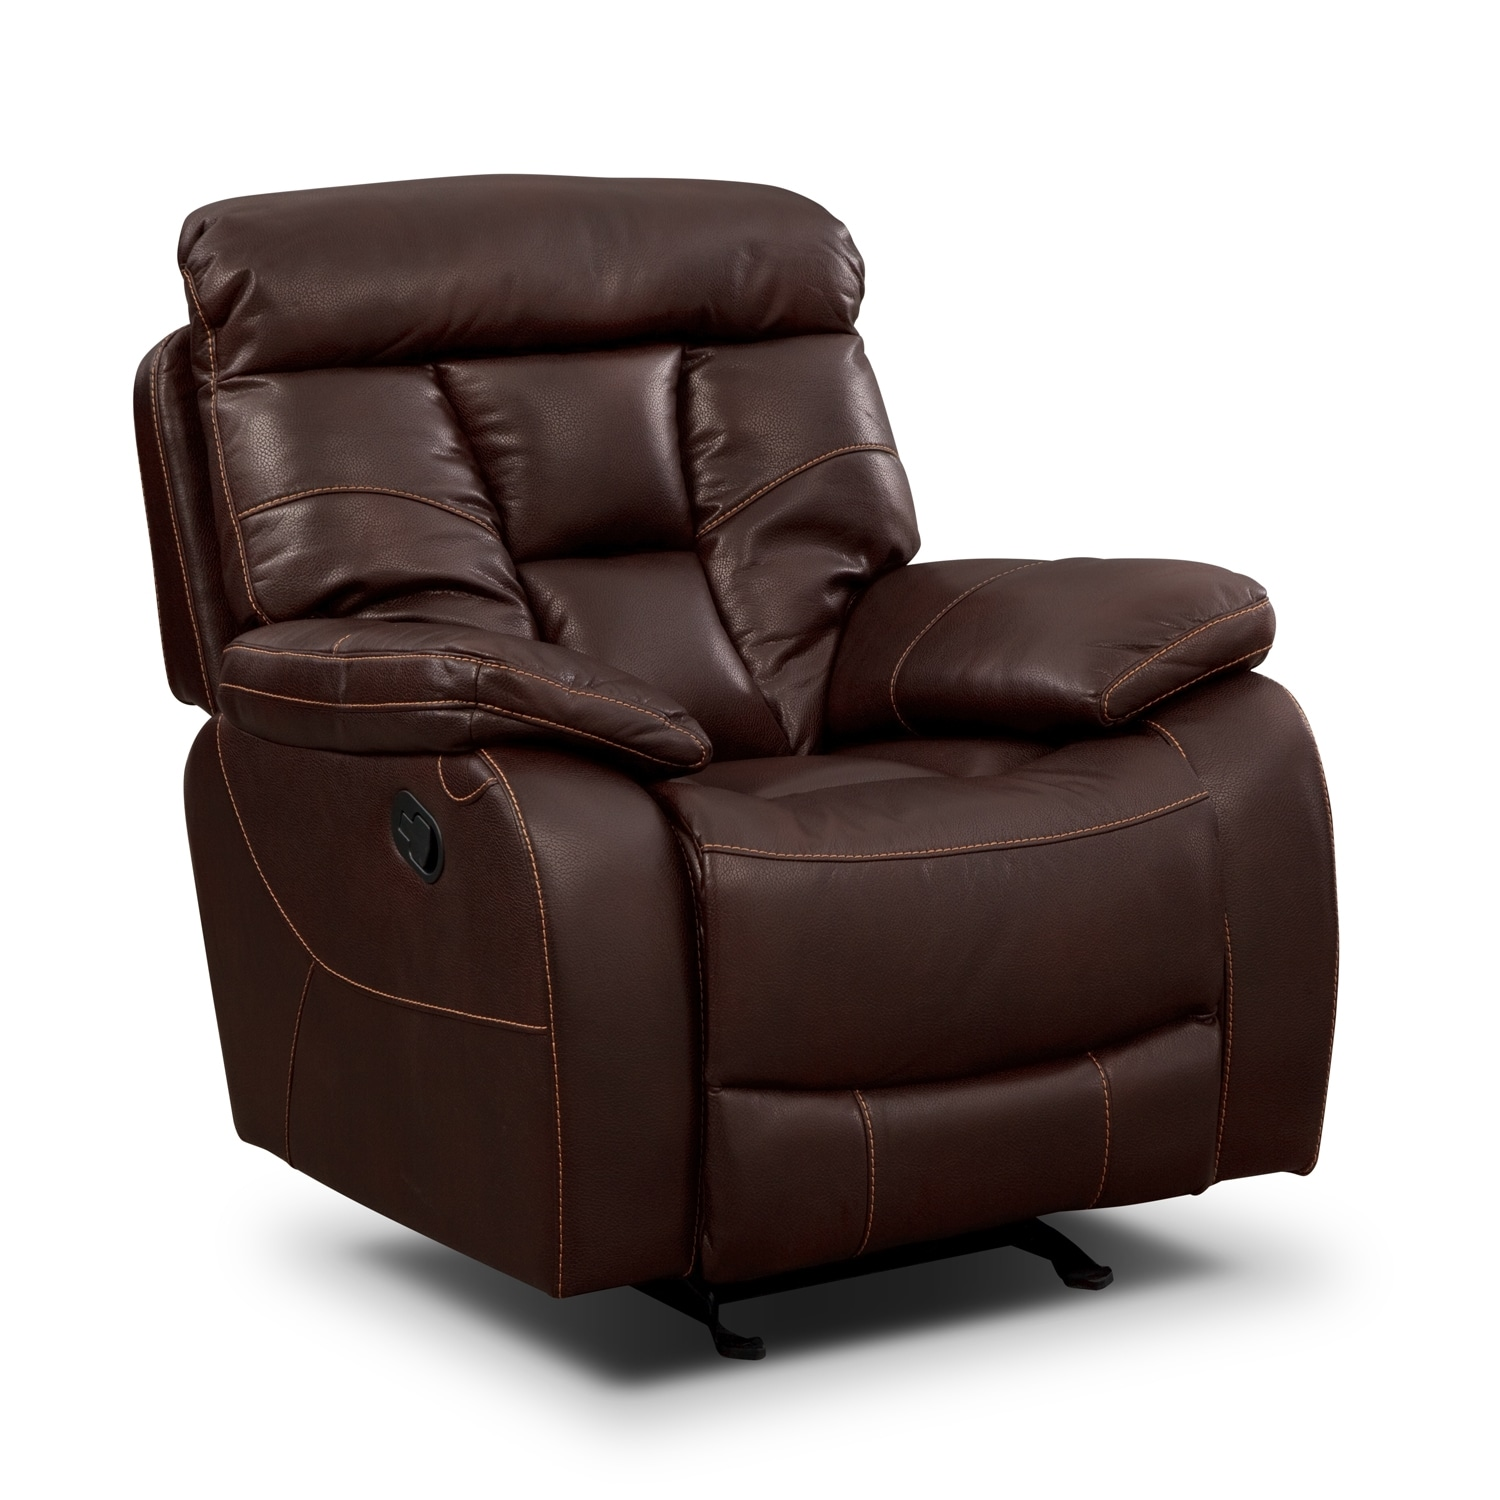 Dakota Reclining Sofa Glider Loveseat And Glider Recliner Set Java American Signature Furniture